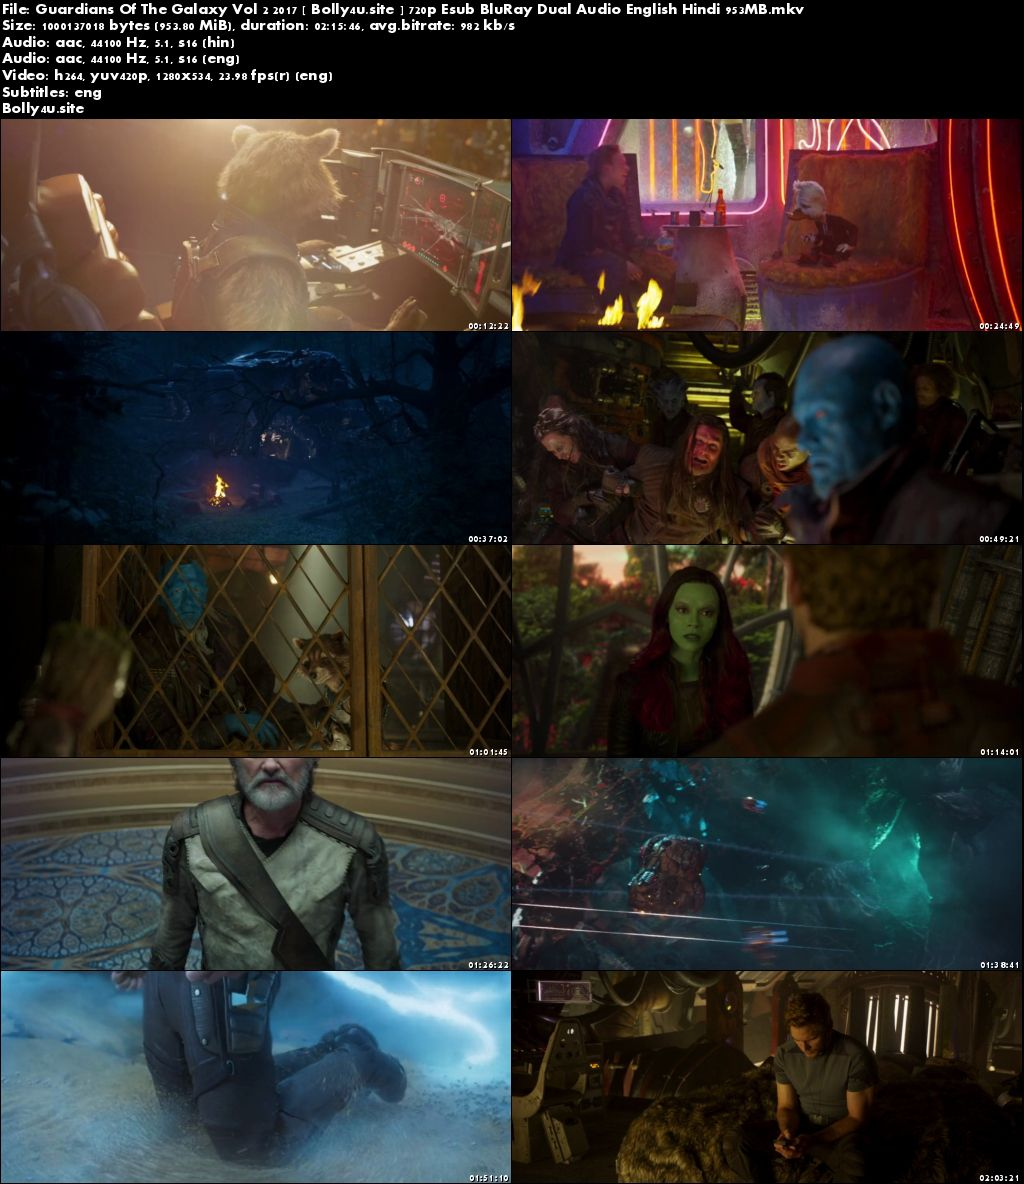 Guardians Of The Galaxy Vol 2 2017 BRRip 400MB Hindi Dual Audio 480p Download